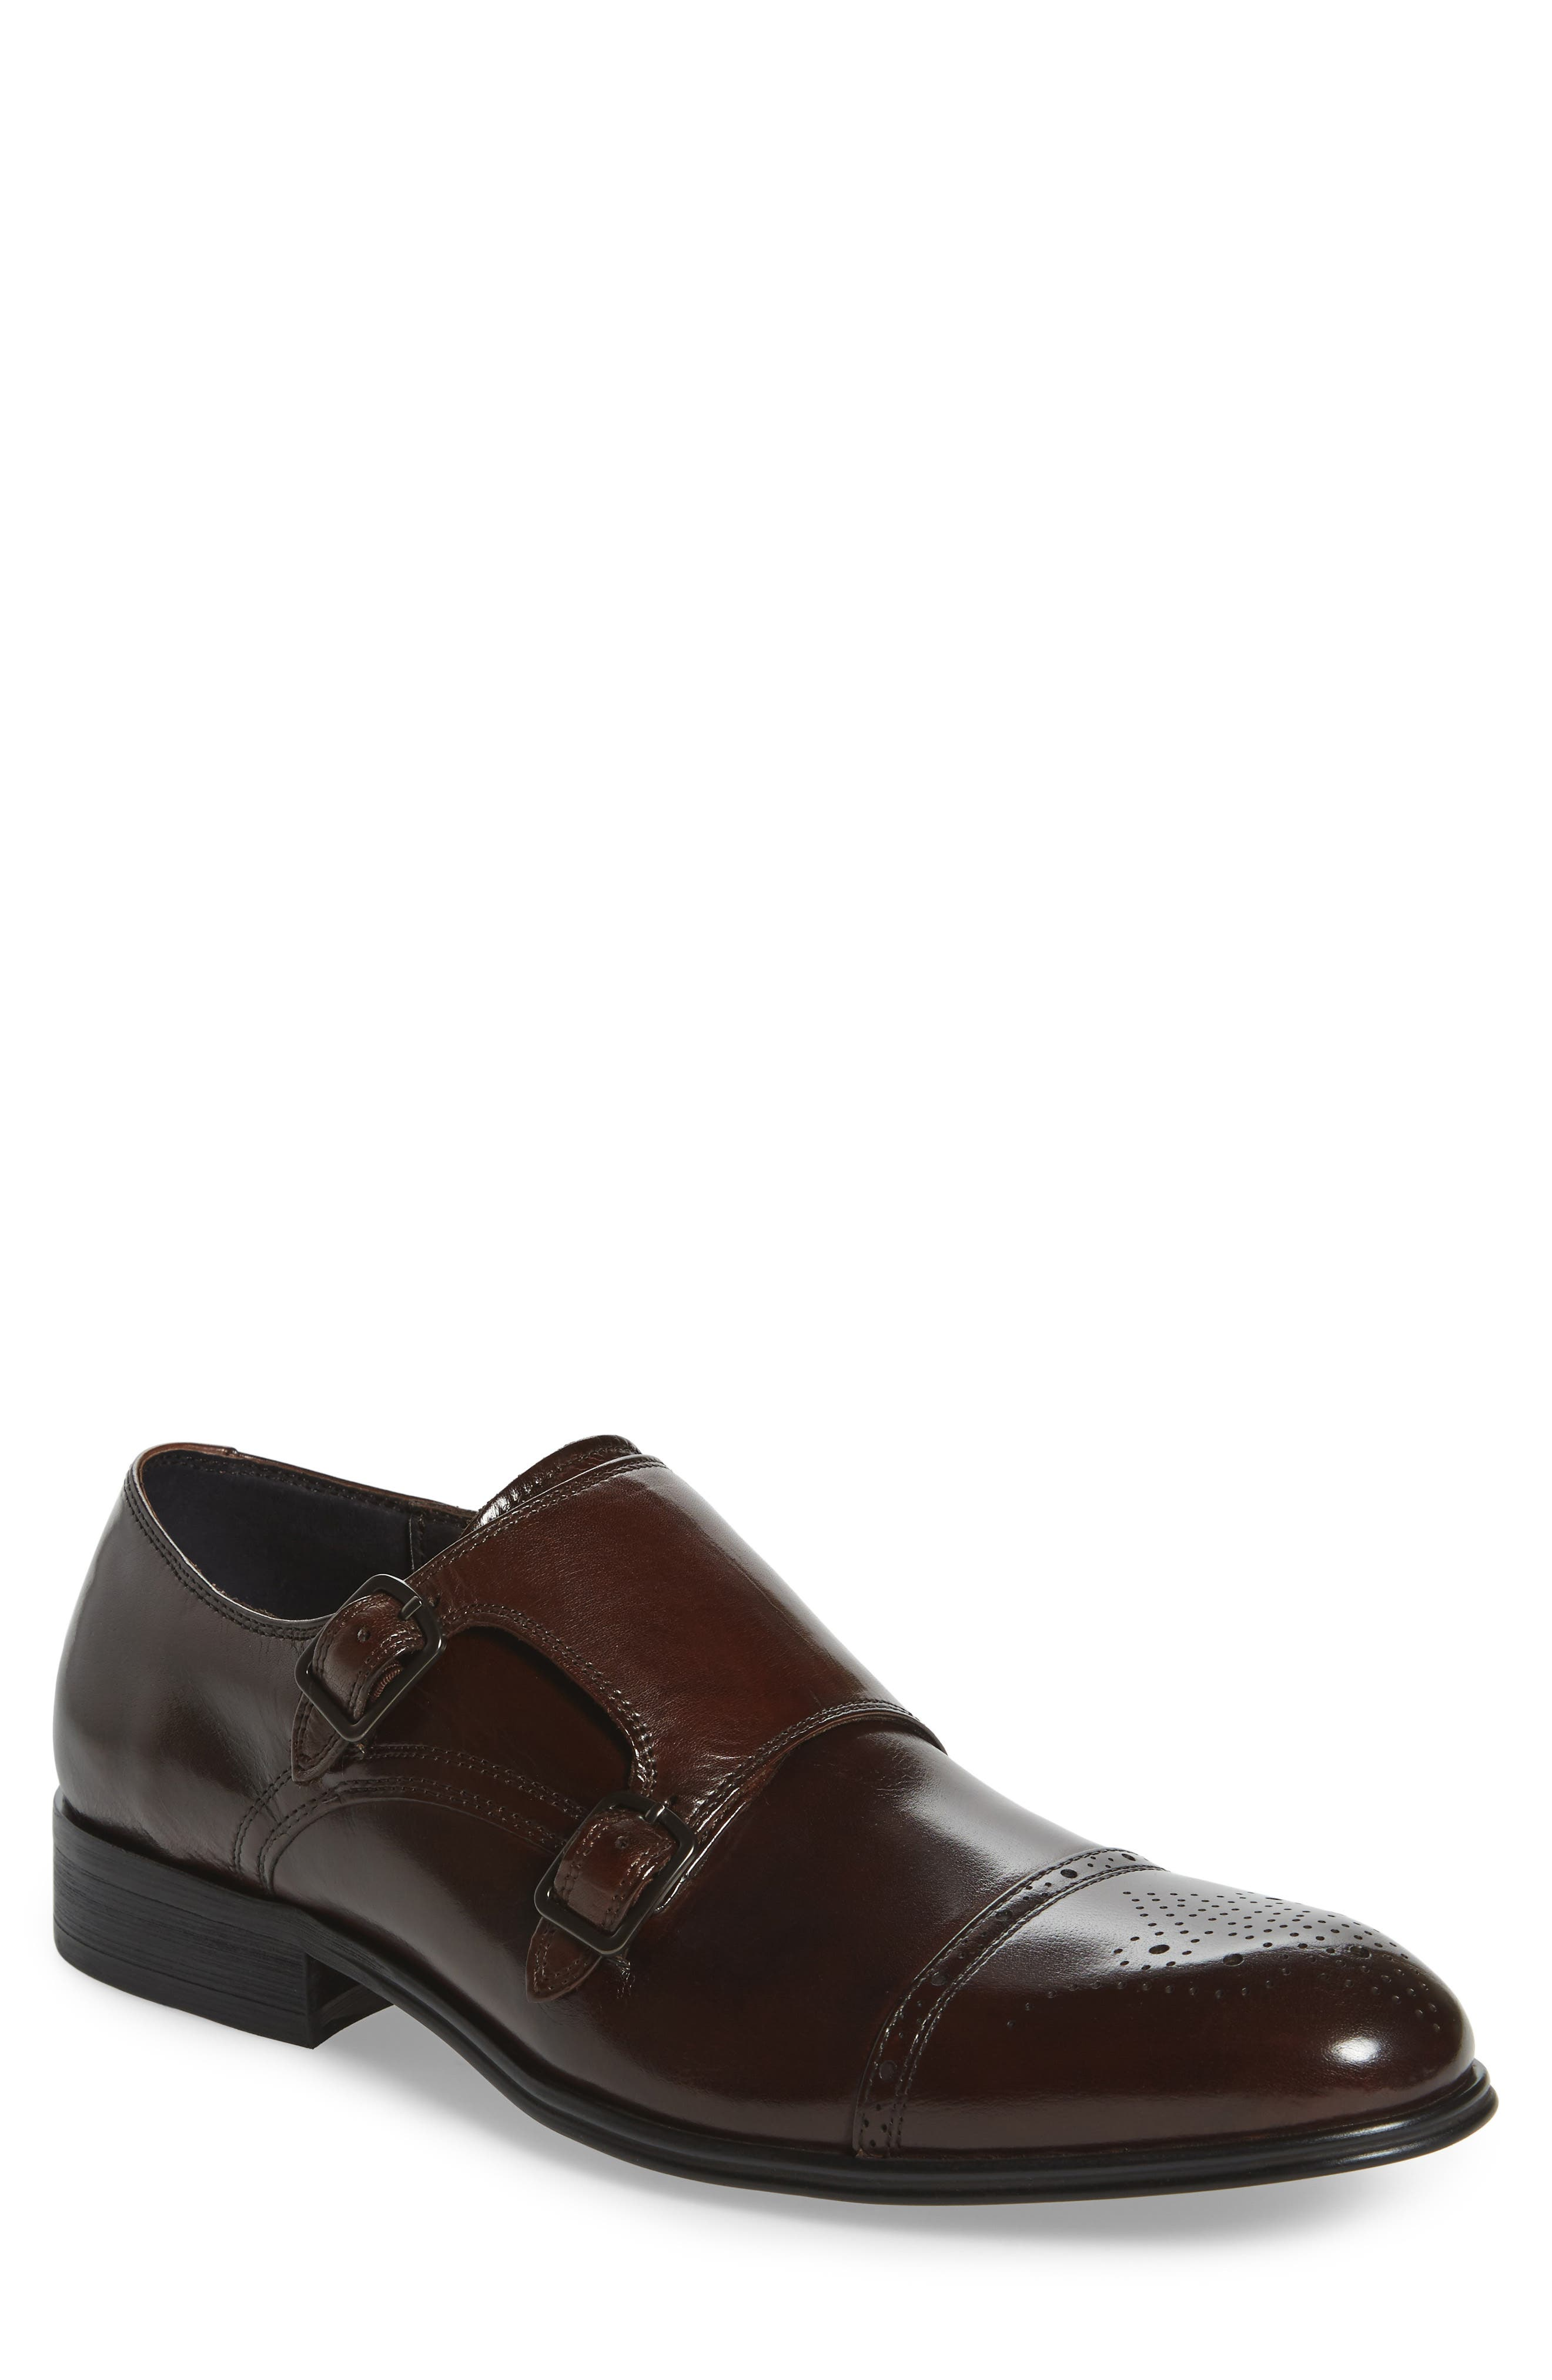 Kenneth Cole New York Cap Toe Monk Shoe (Men)